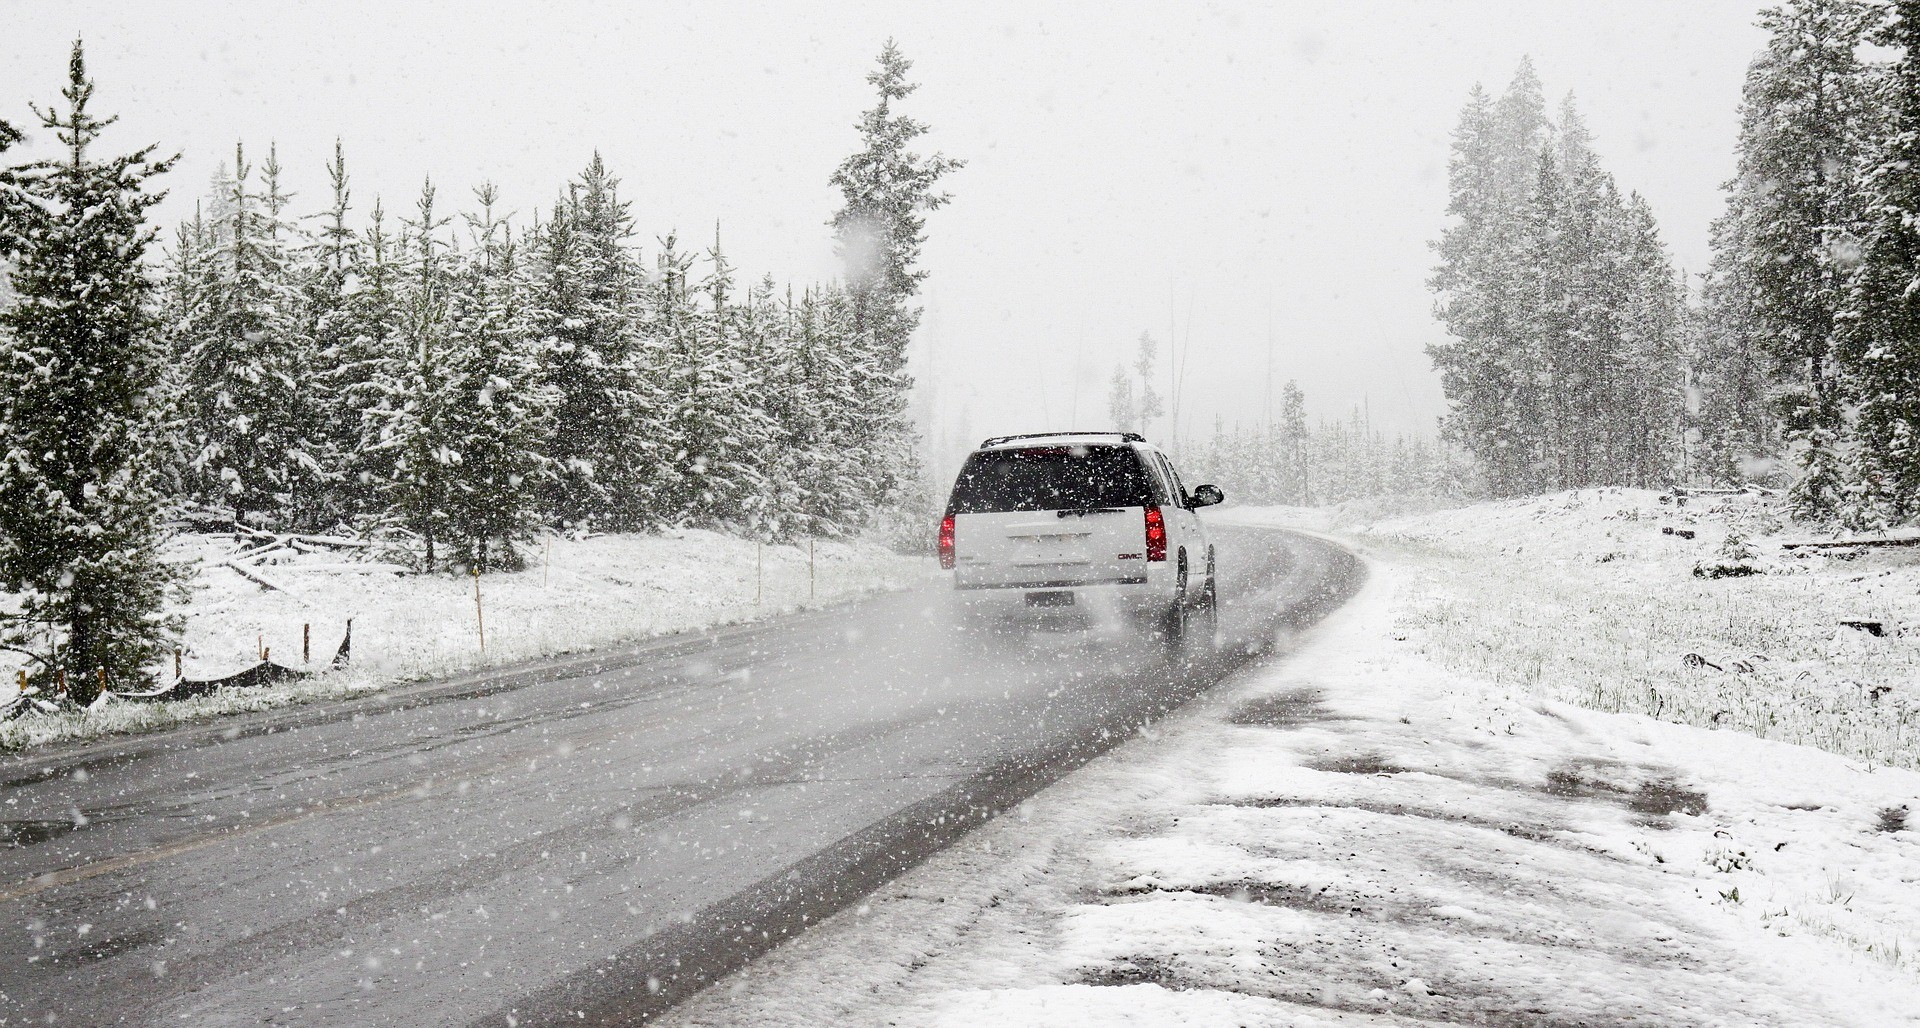 Scientists are developing a better alternative to road salt, inspired by nature